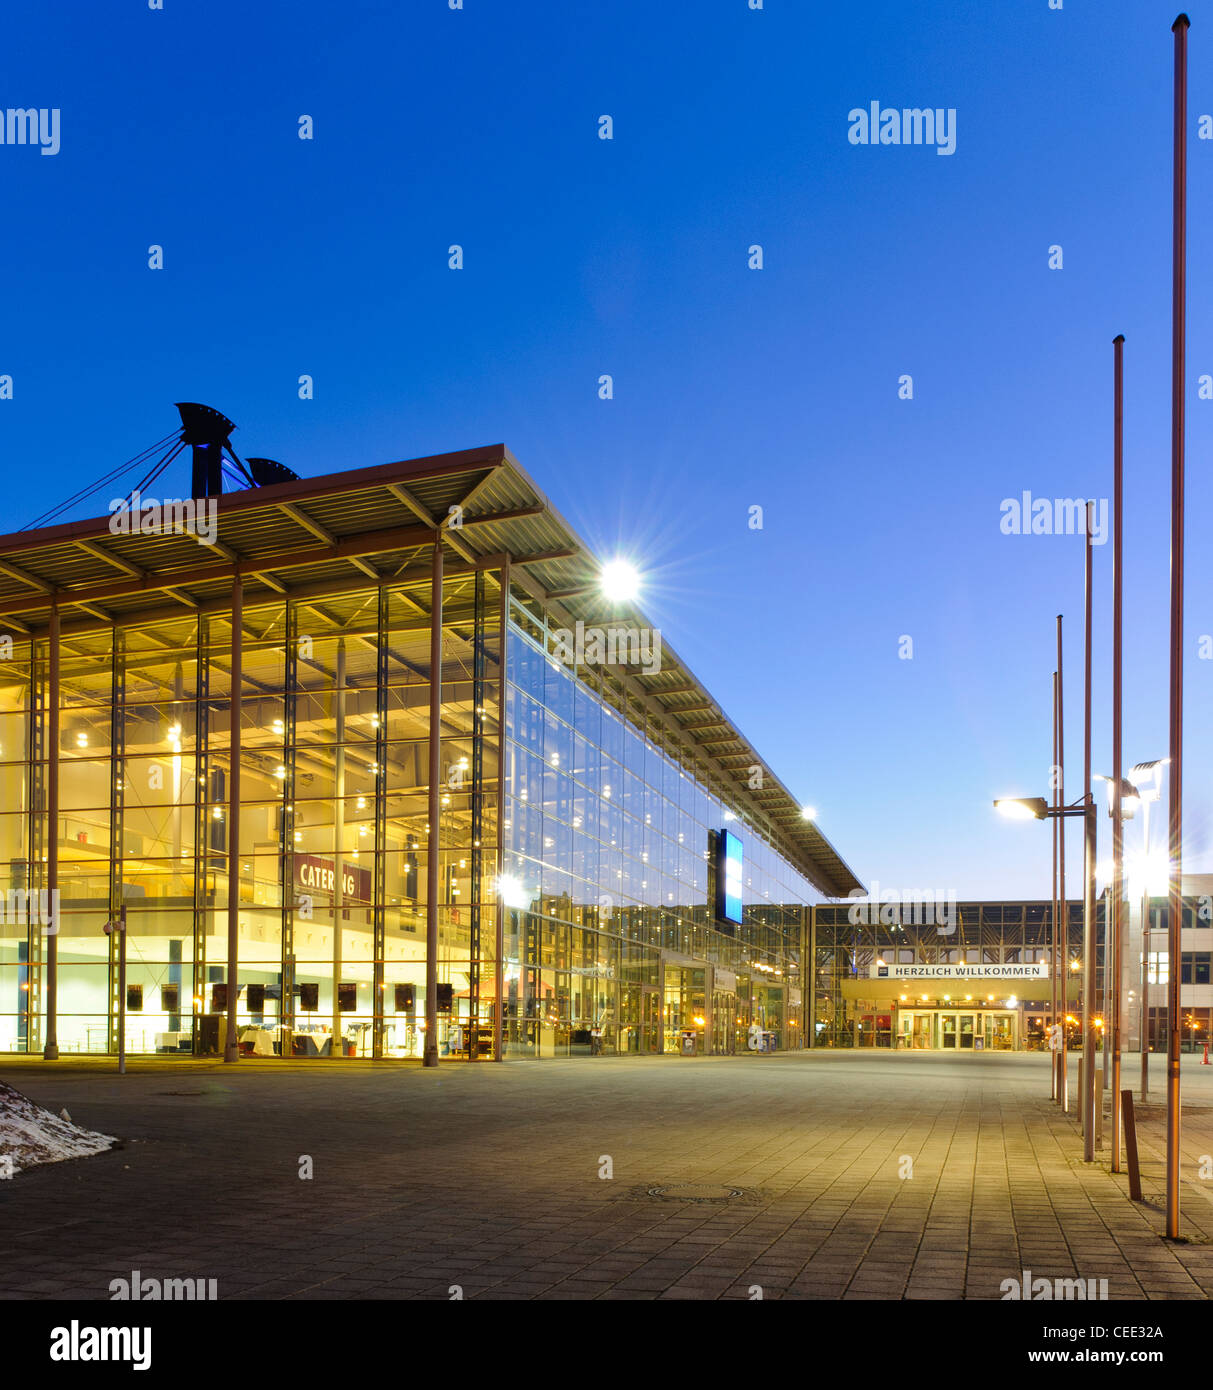 Messe Erfurt Congress Center, exhibition grounds, in the evening, Erfurt, Thuringia, Germany, Europe - Stock Image